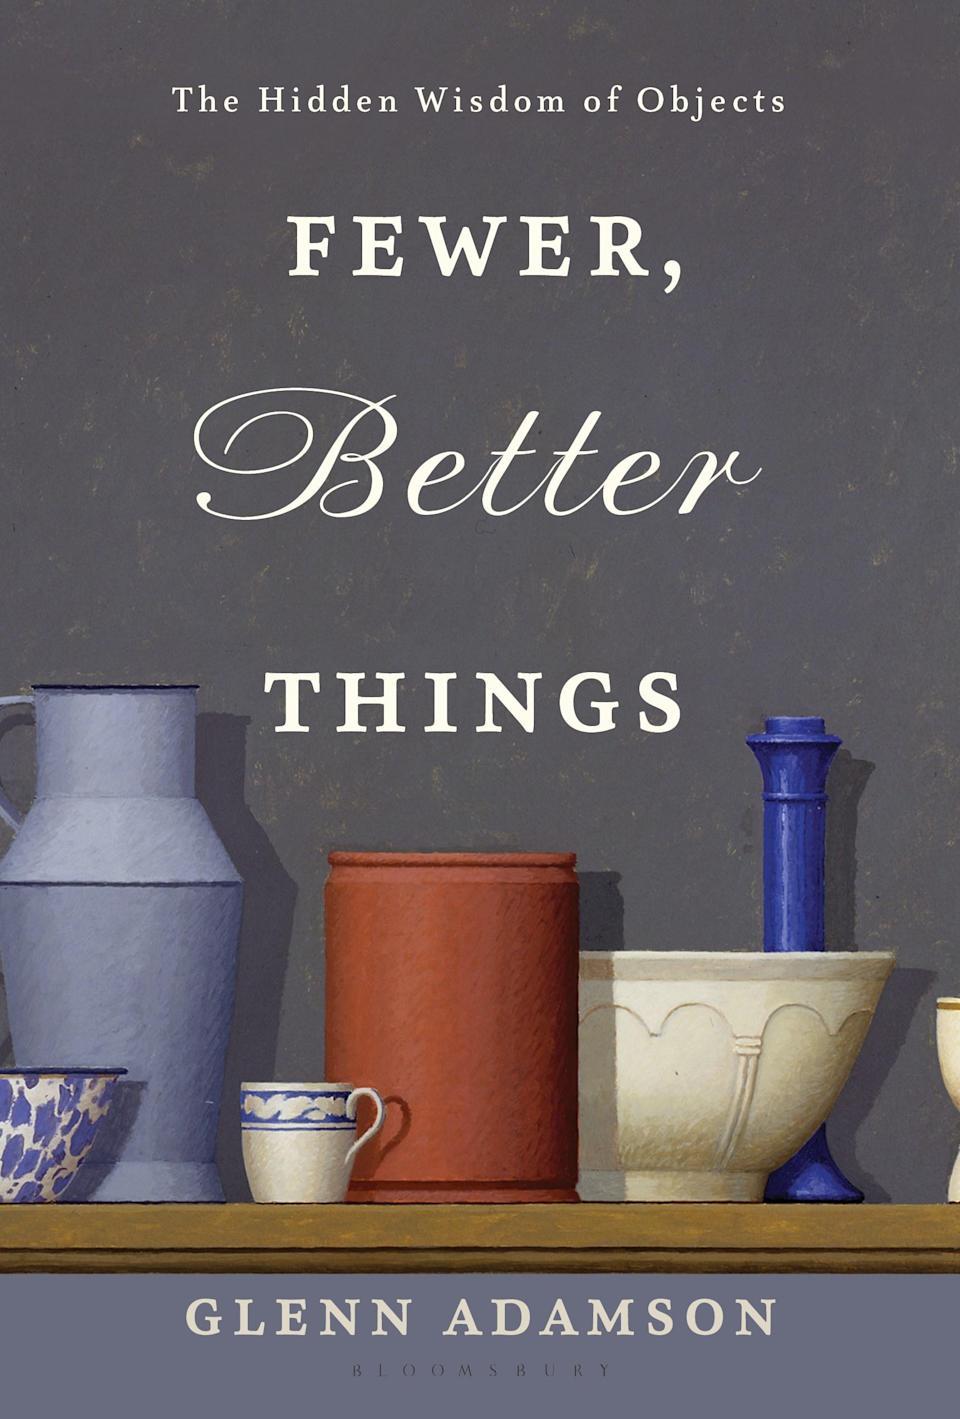 Fewer, Better Things: The Hidden Wisdom of Objects by Glenn Adamson (Bloomsbury)